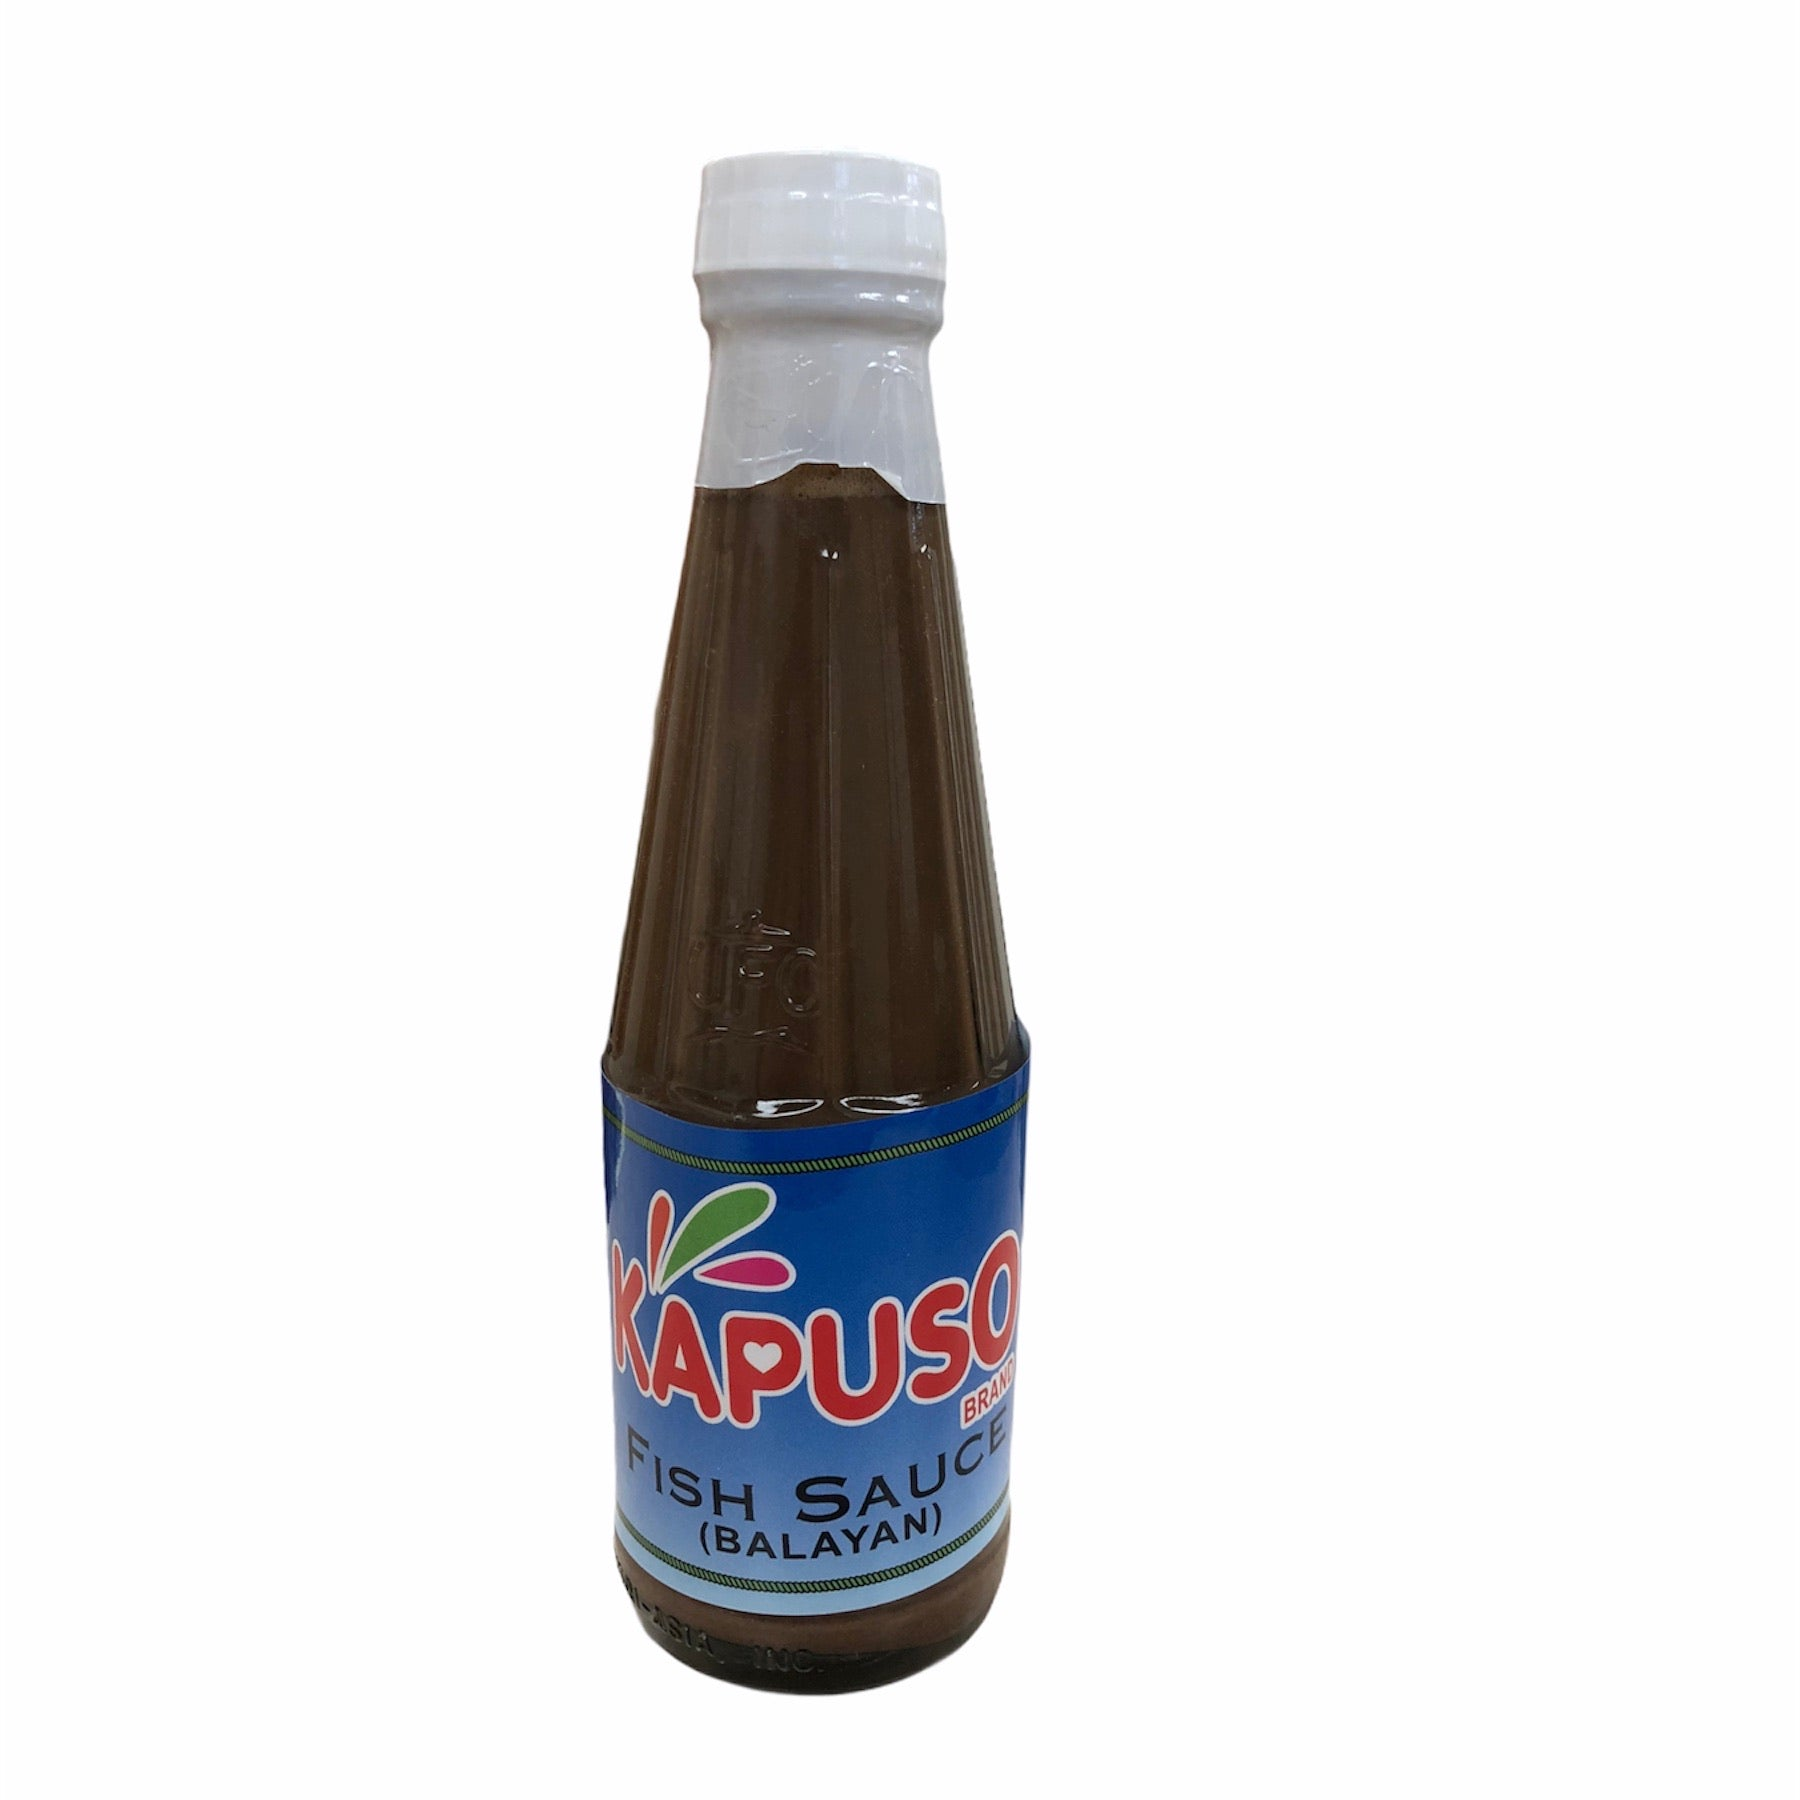 Kapuso - Bagoong Balayan Fish Sauce